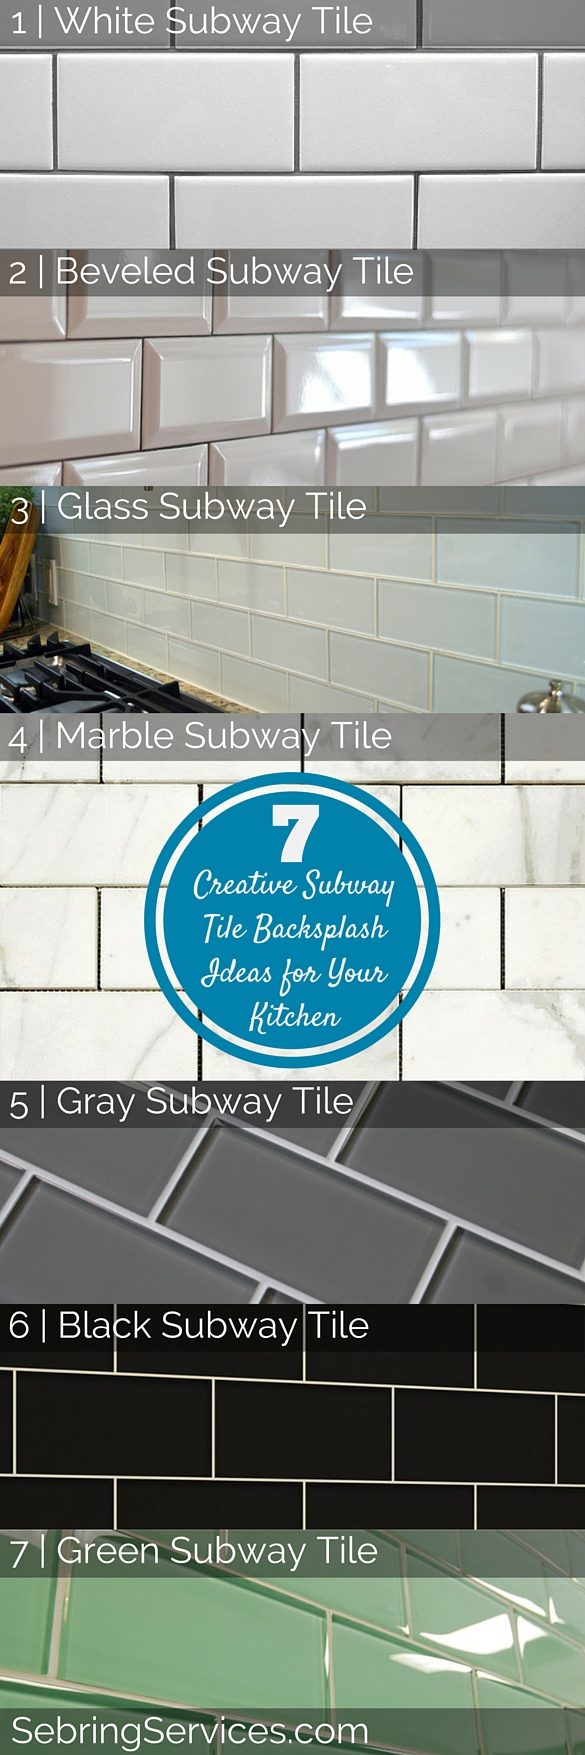 Creative Subway Tile Backsplash Ideas for Your Kitchen - Sebring ...